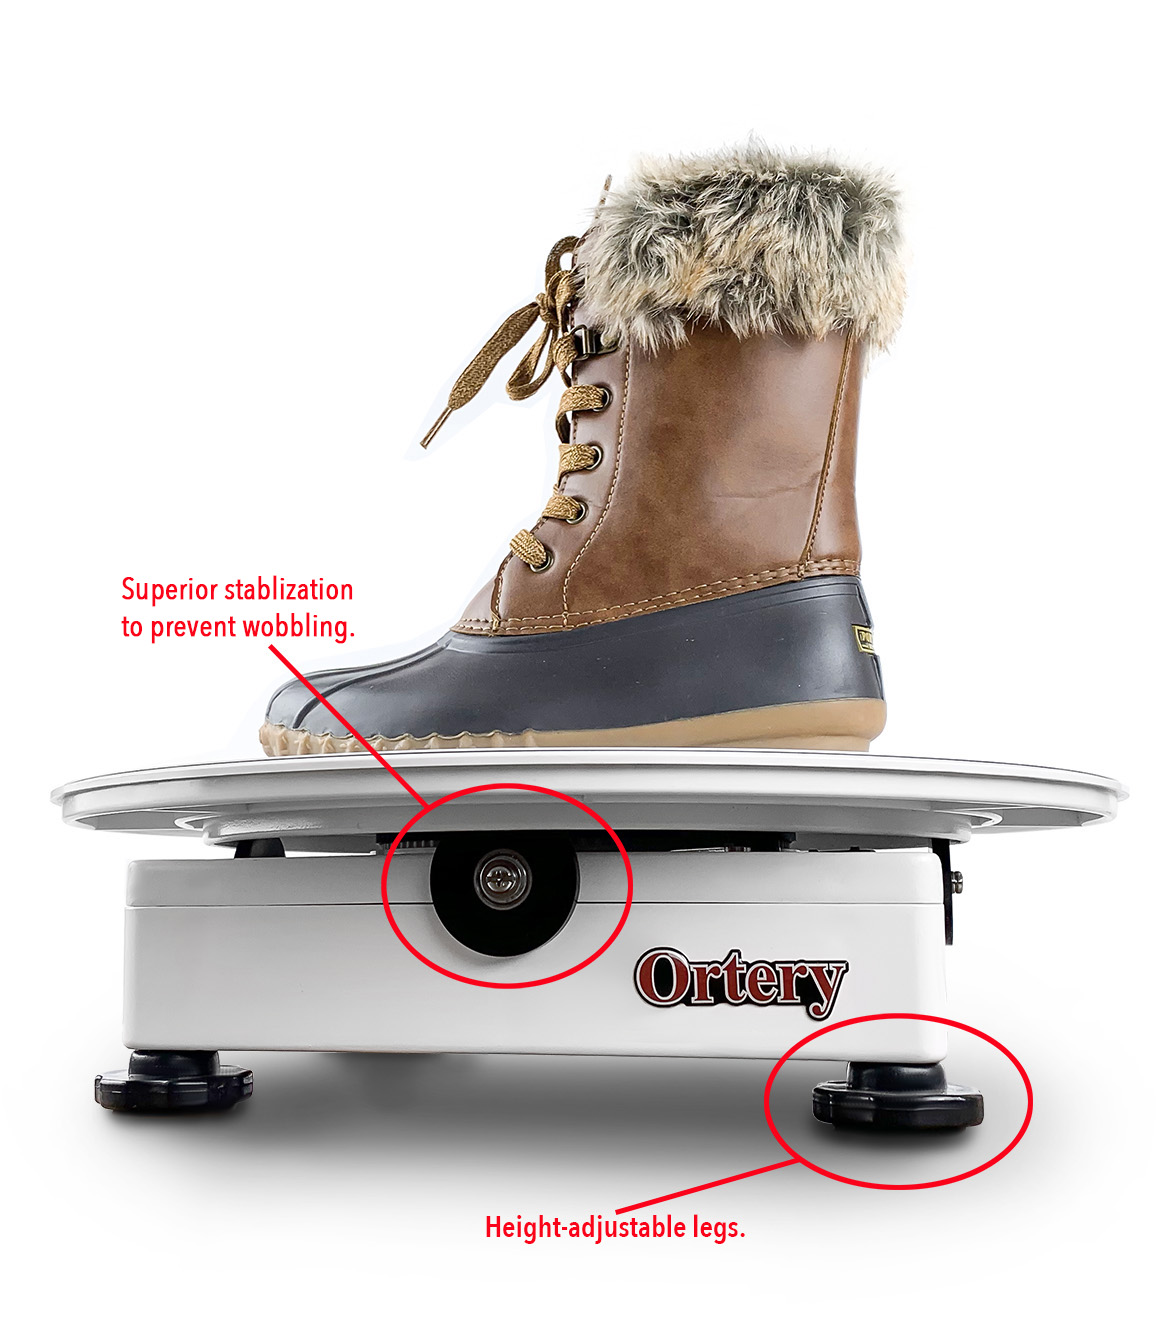 ortery-photocapture-360-small-product-photography-turntable-boot copy